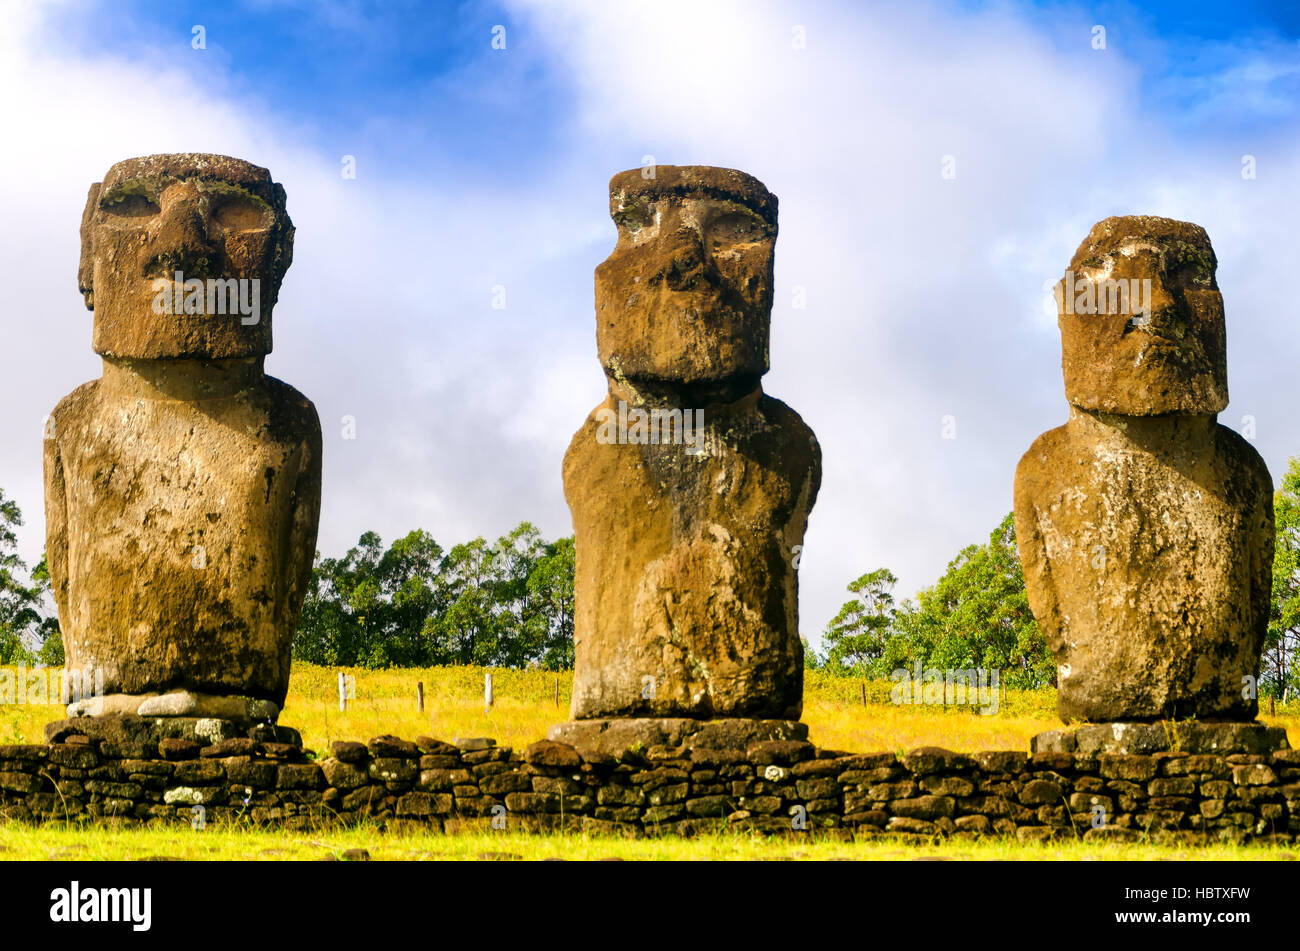 Three Moai statues on Easter Island, Chile - Stock Image